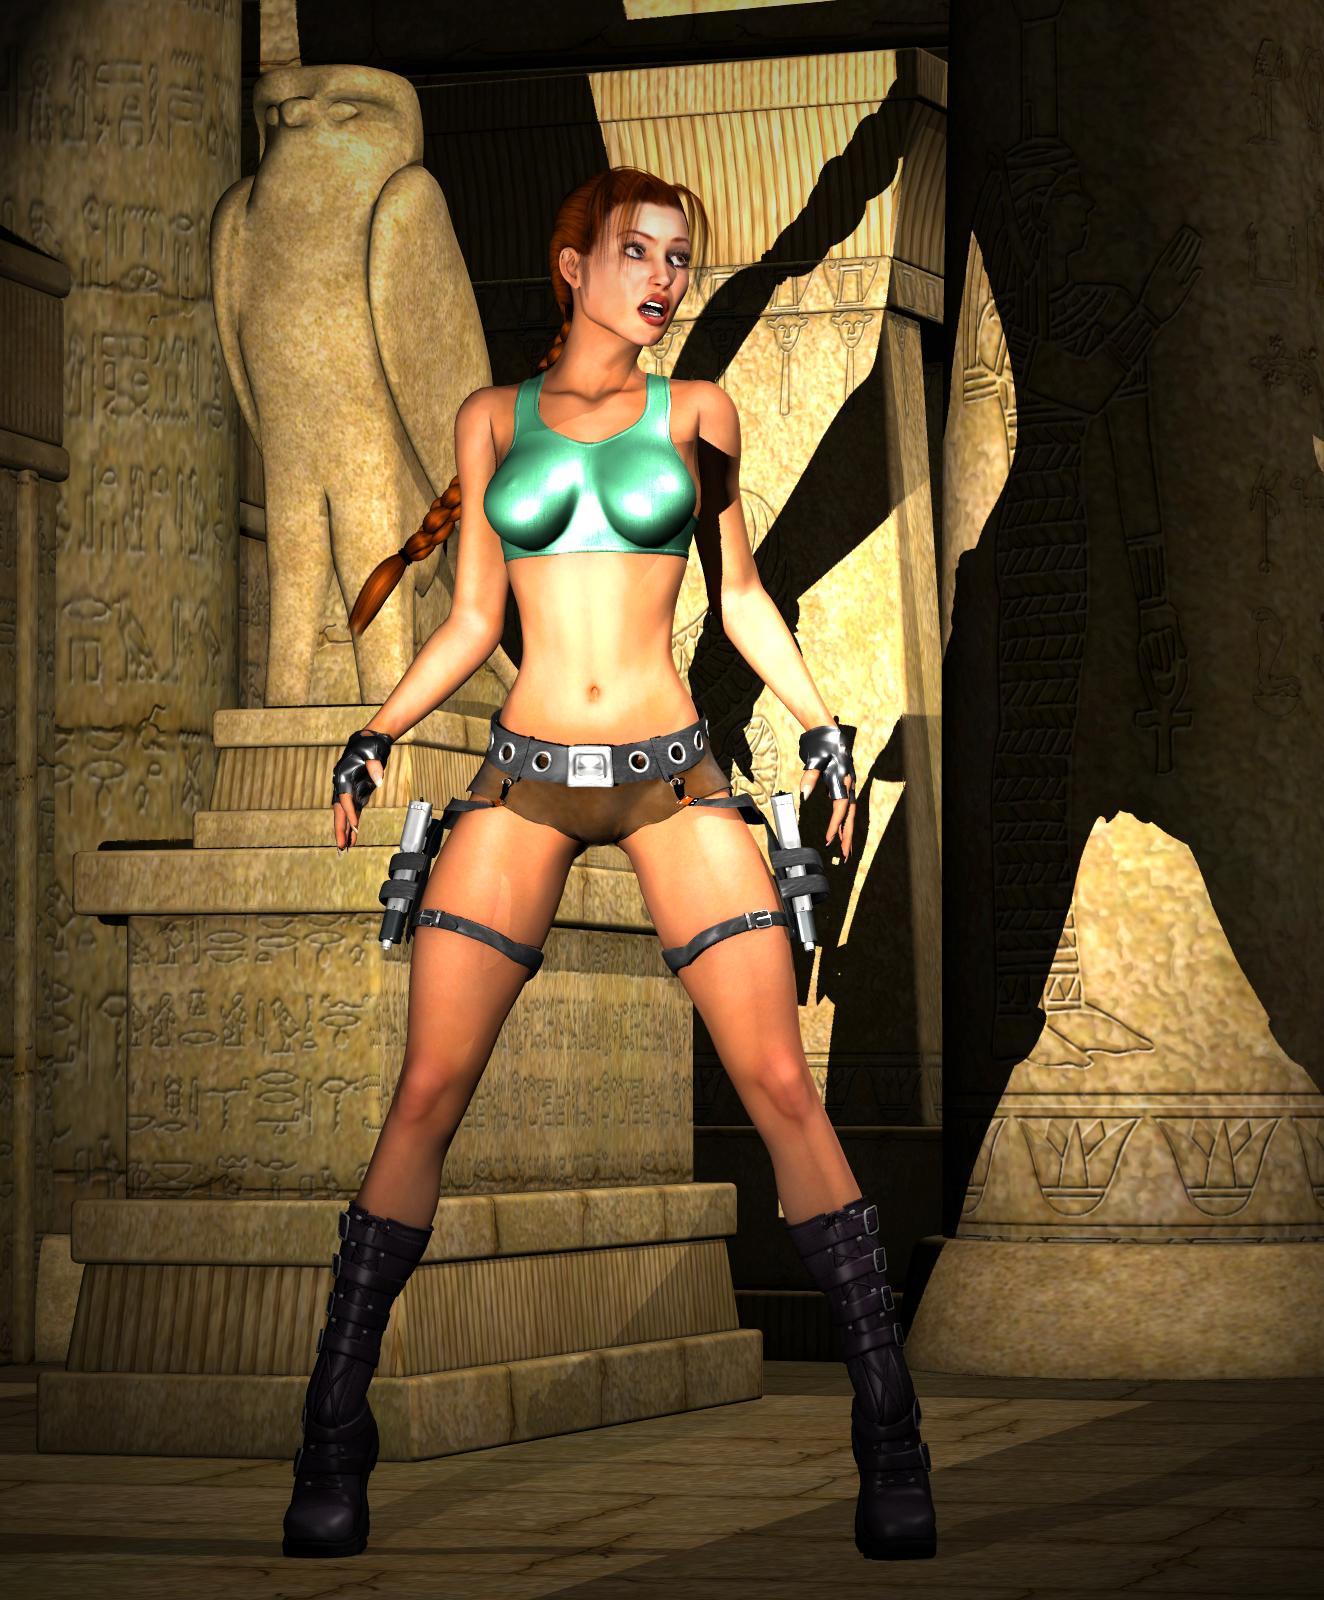 Tomb raider lara croft hentai image 3d sex picture